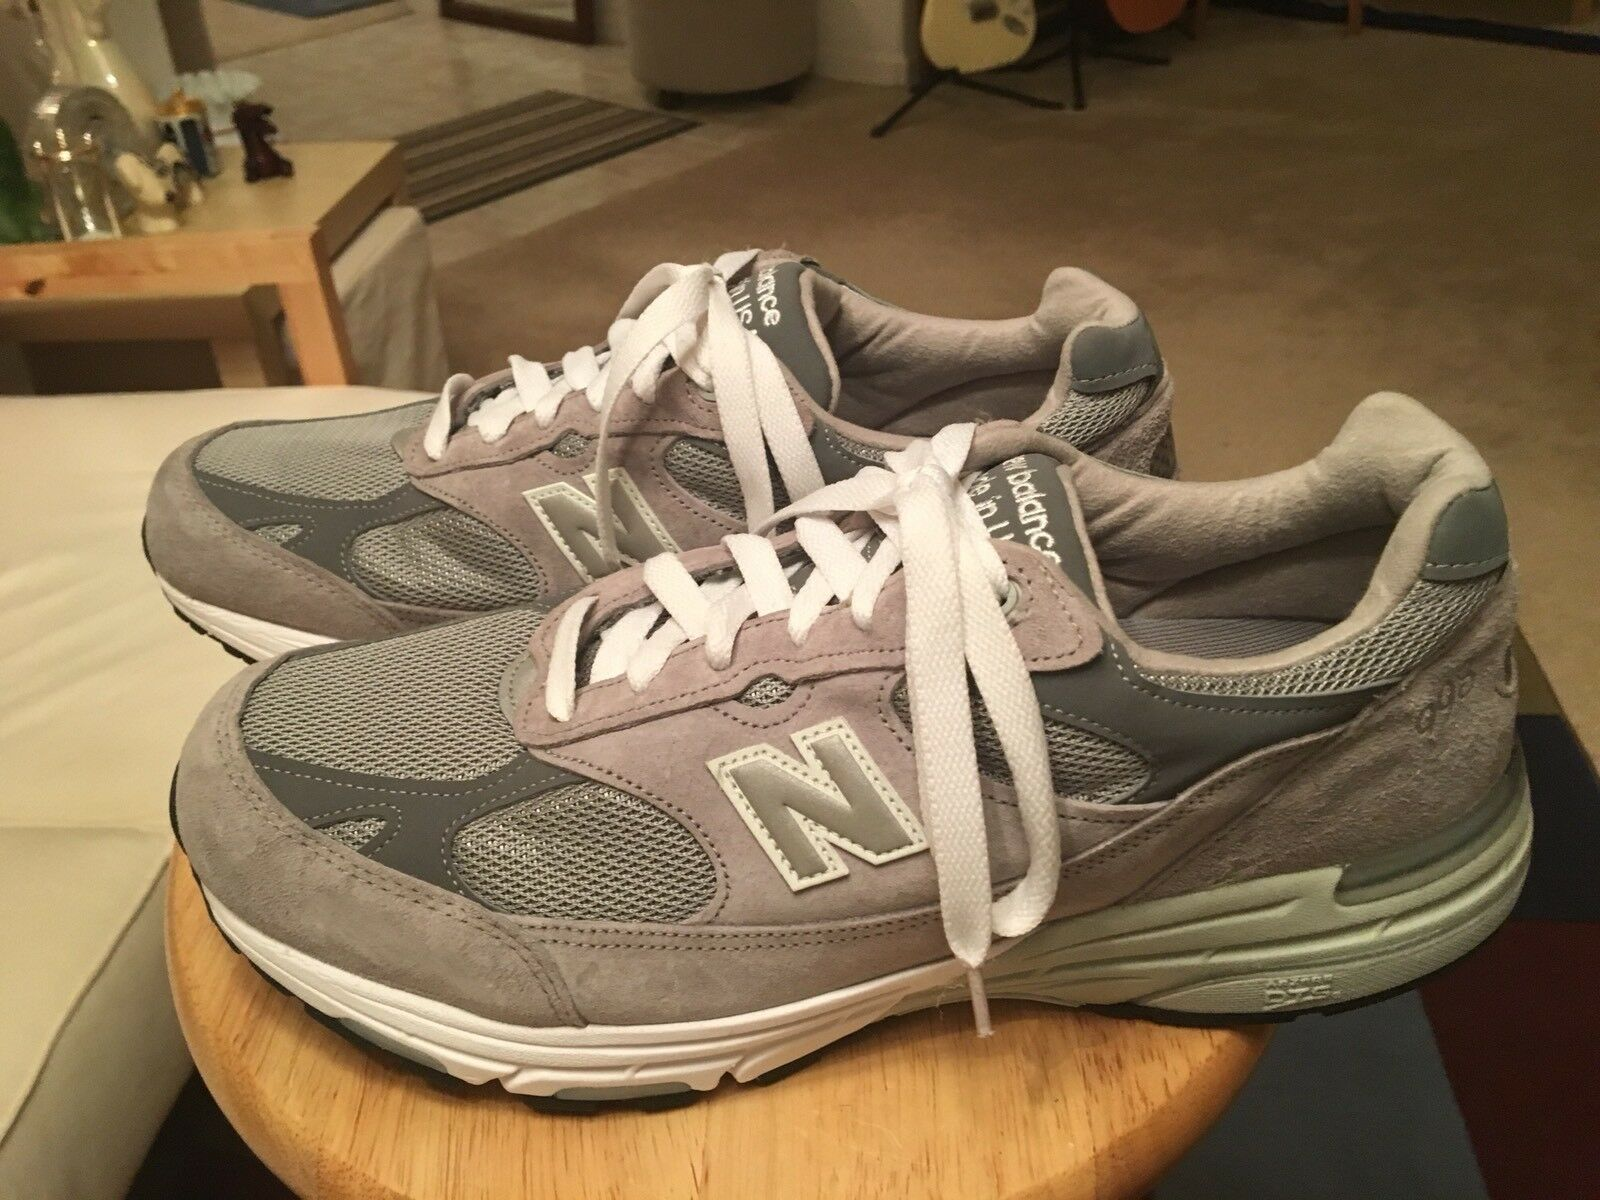 New Balance 993 USA Gray Men's US12.5 Suede Athletic Sneakers Shoes